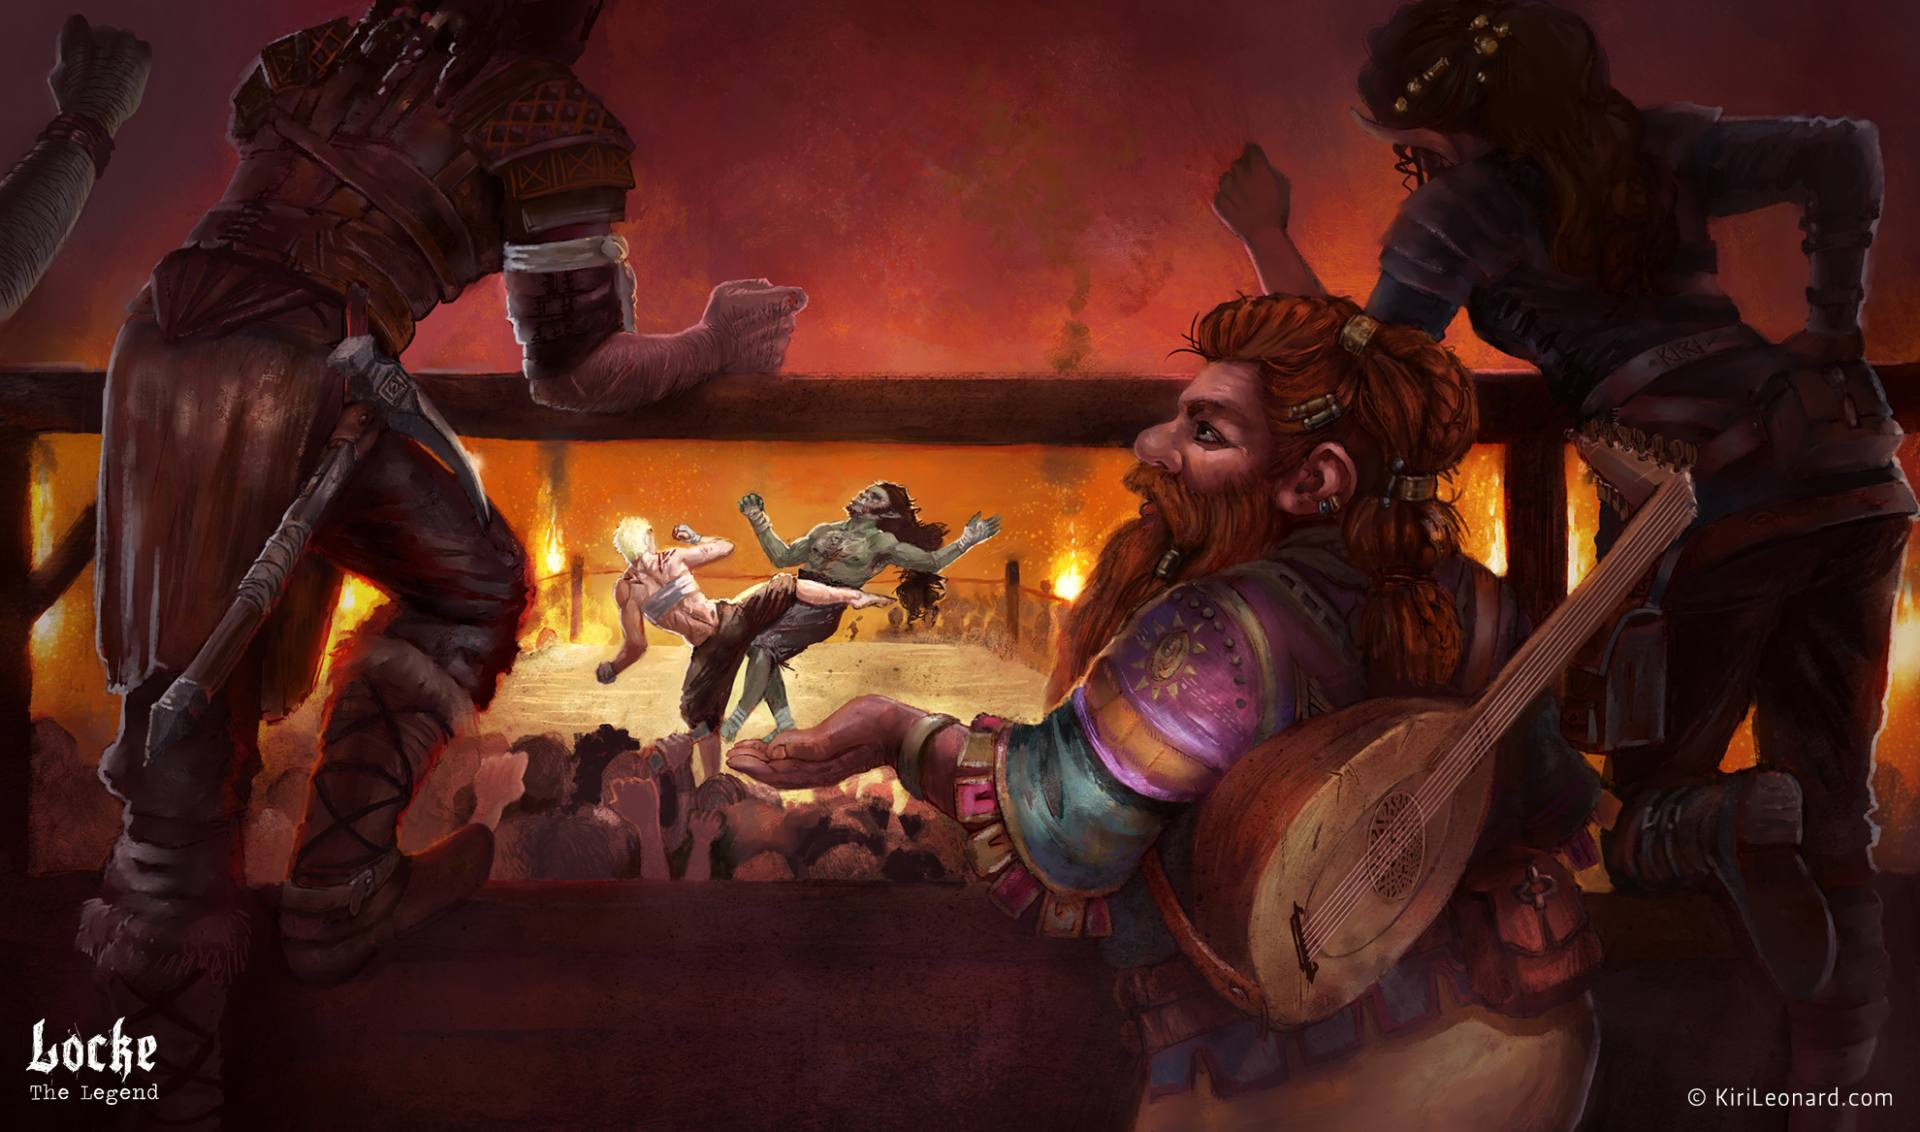 Illustration of D&D characters hanging out in a fighting pit. Female warrior facing an orc.